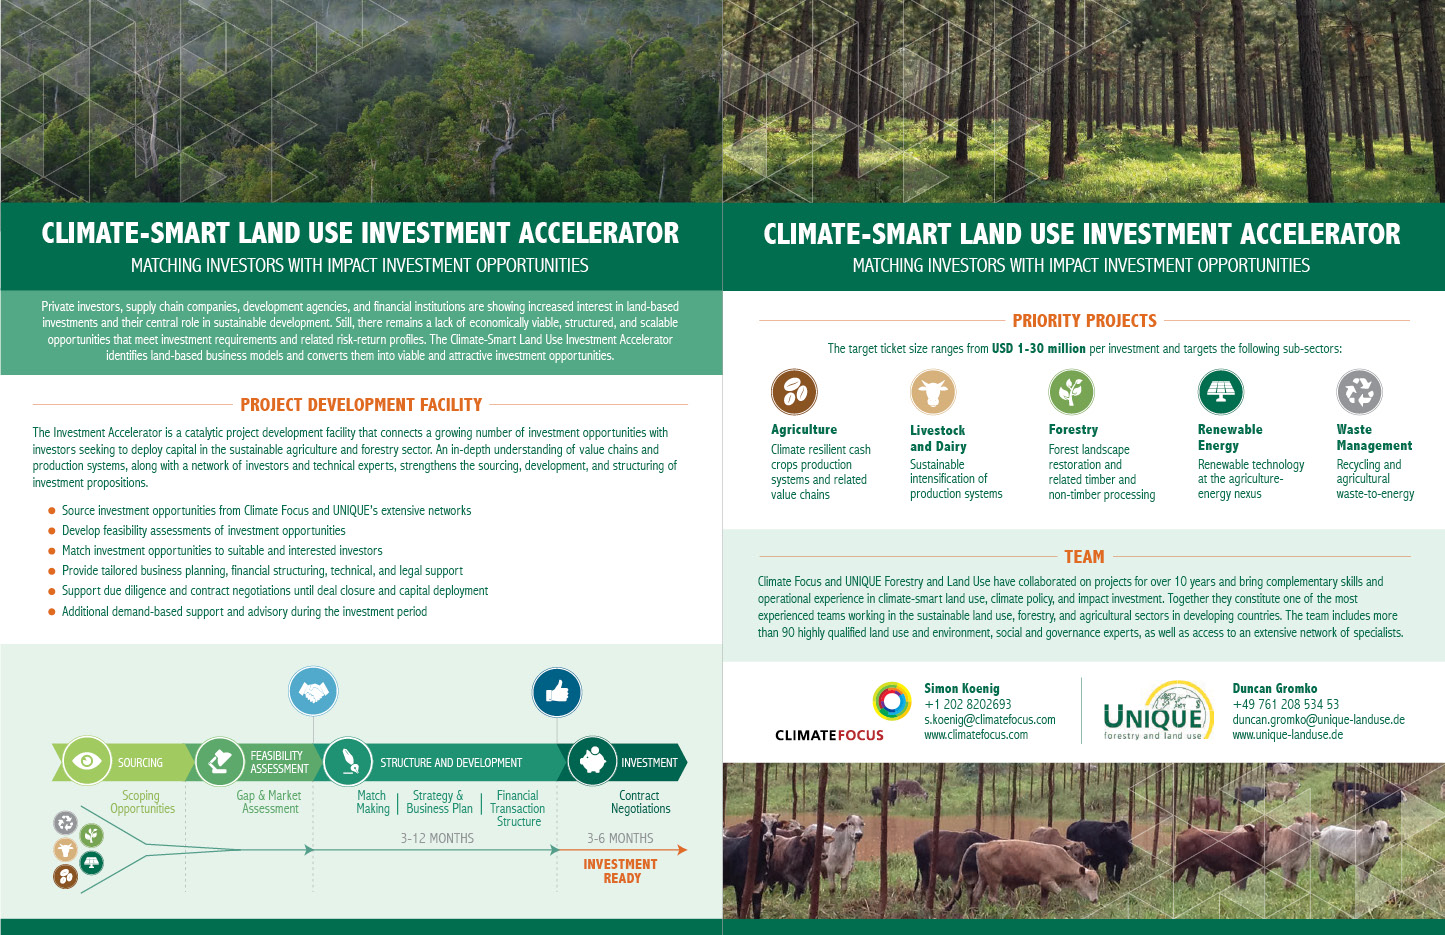 Climate-Smart Land Use Investment Accelerator